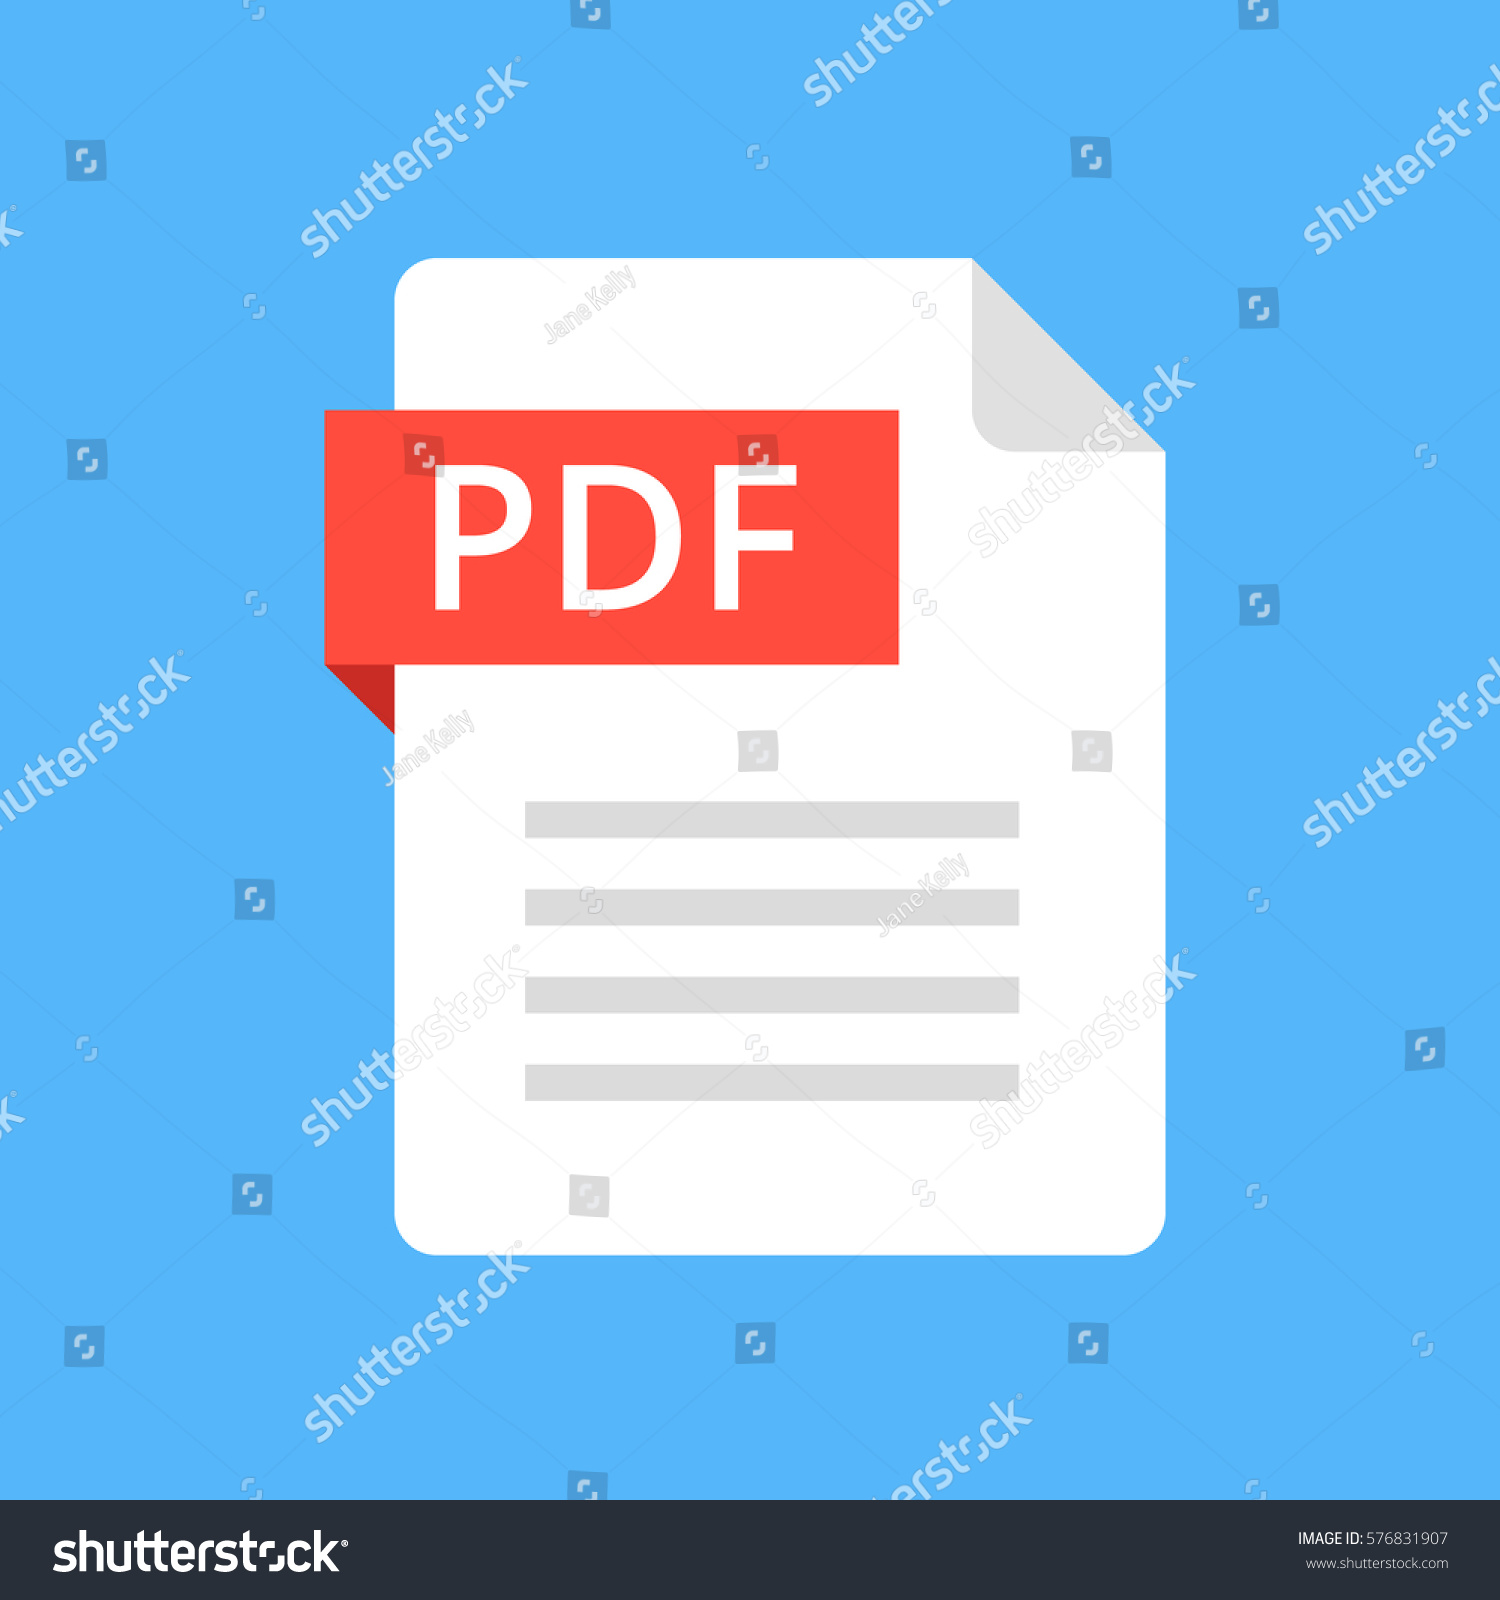 Pdf File Of Computer Graphics